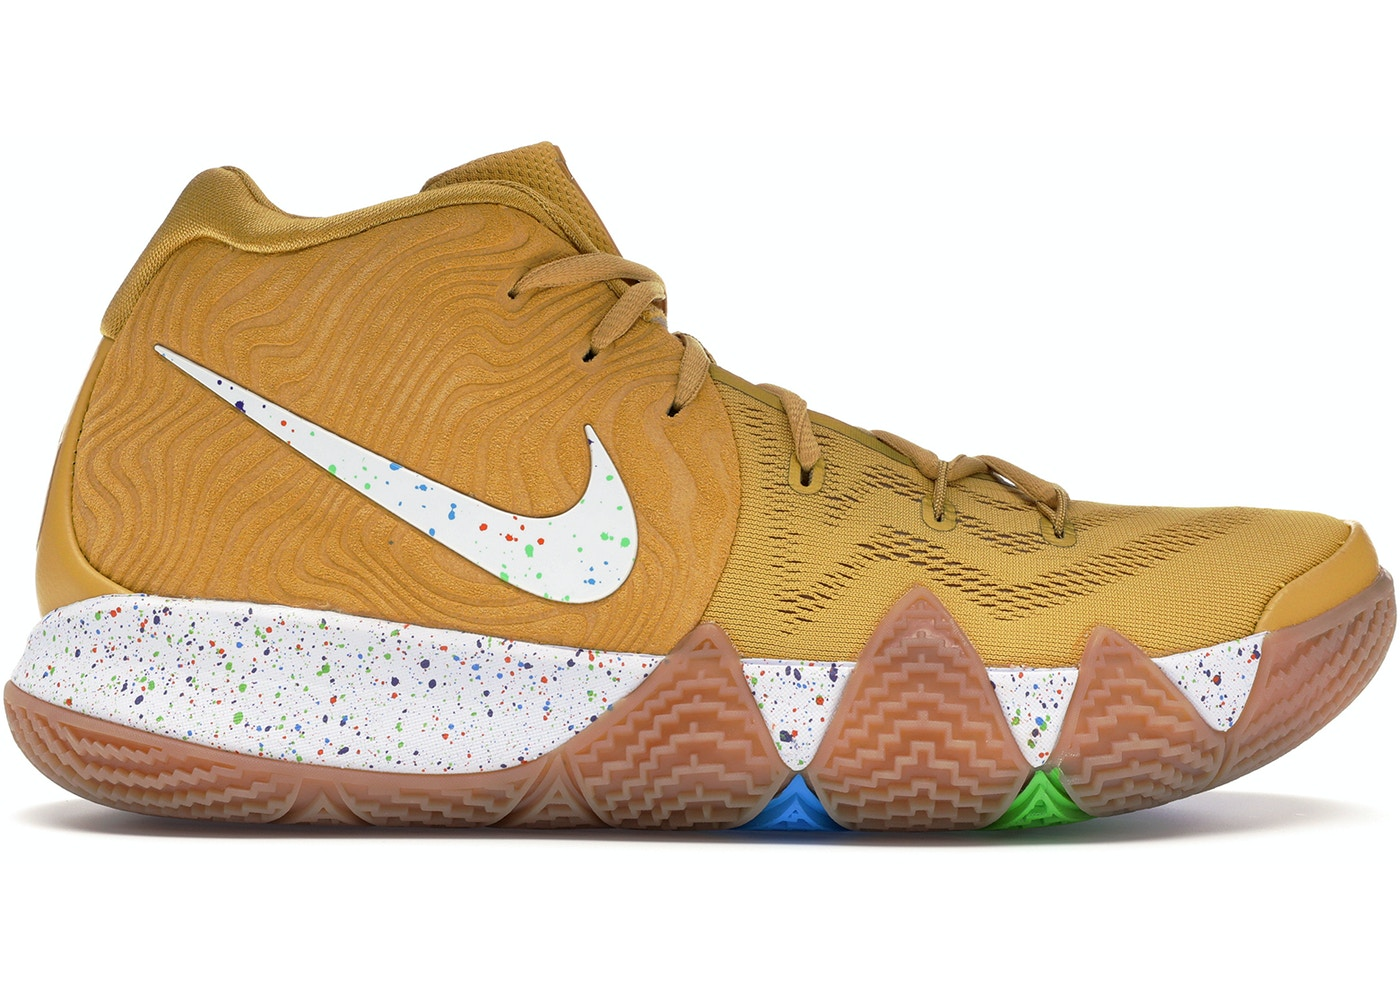 premium selection 23c05 70e2f Kyrie 4 Cinnamon Toast Crunch